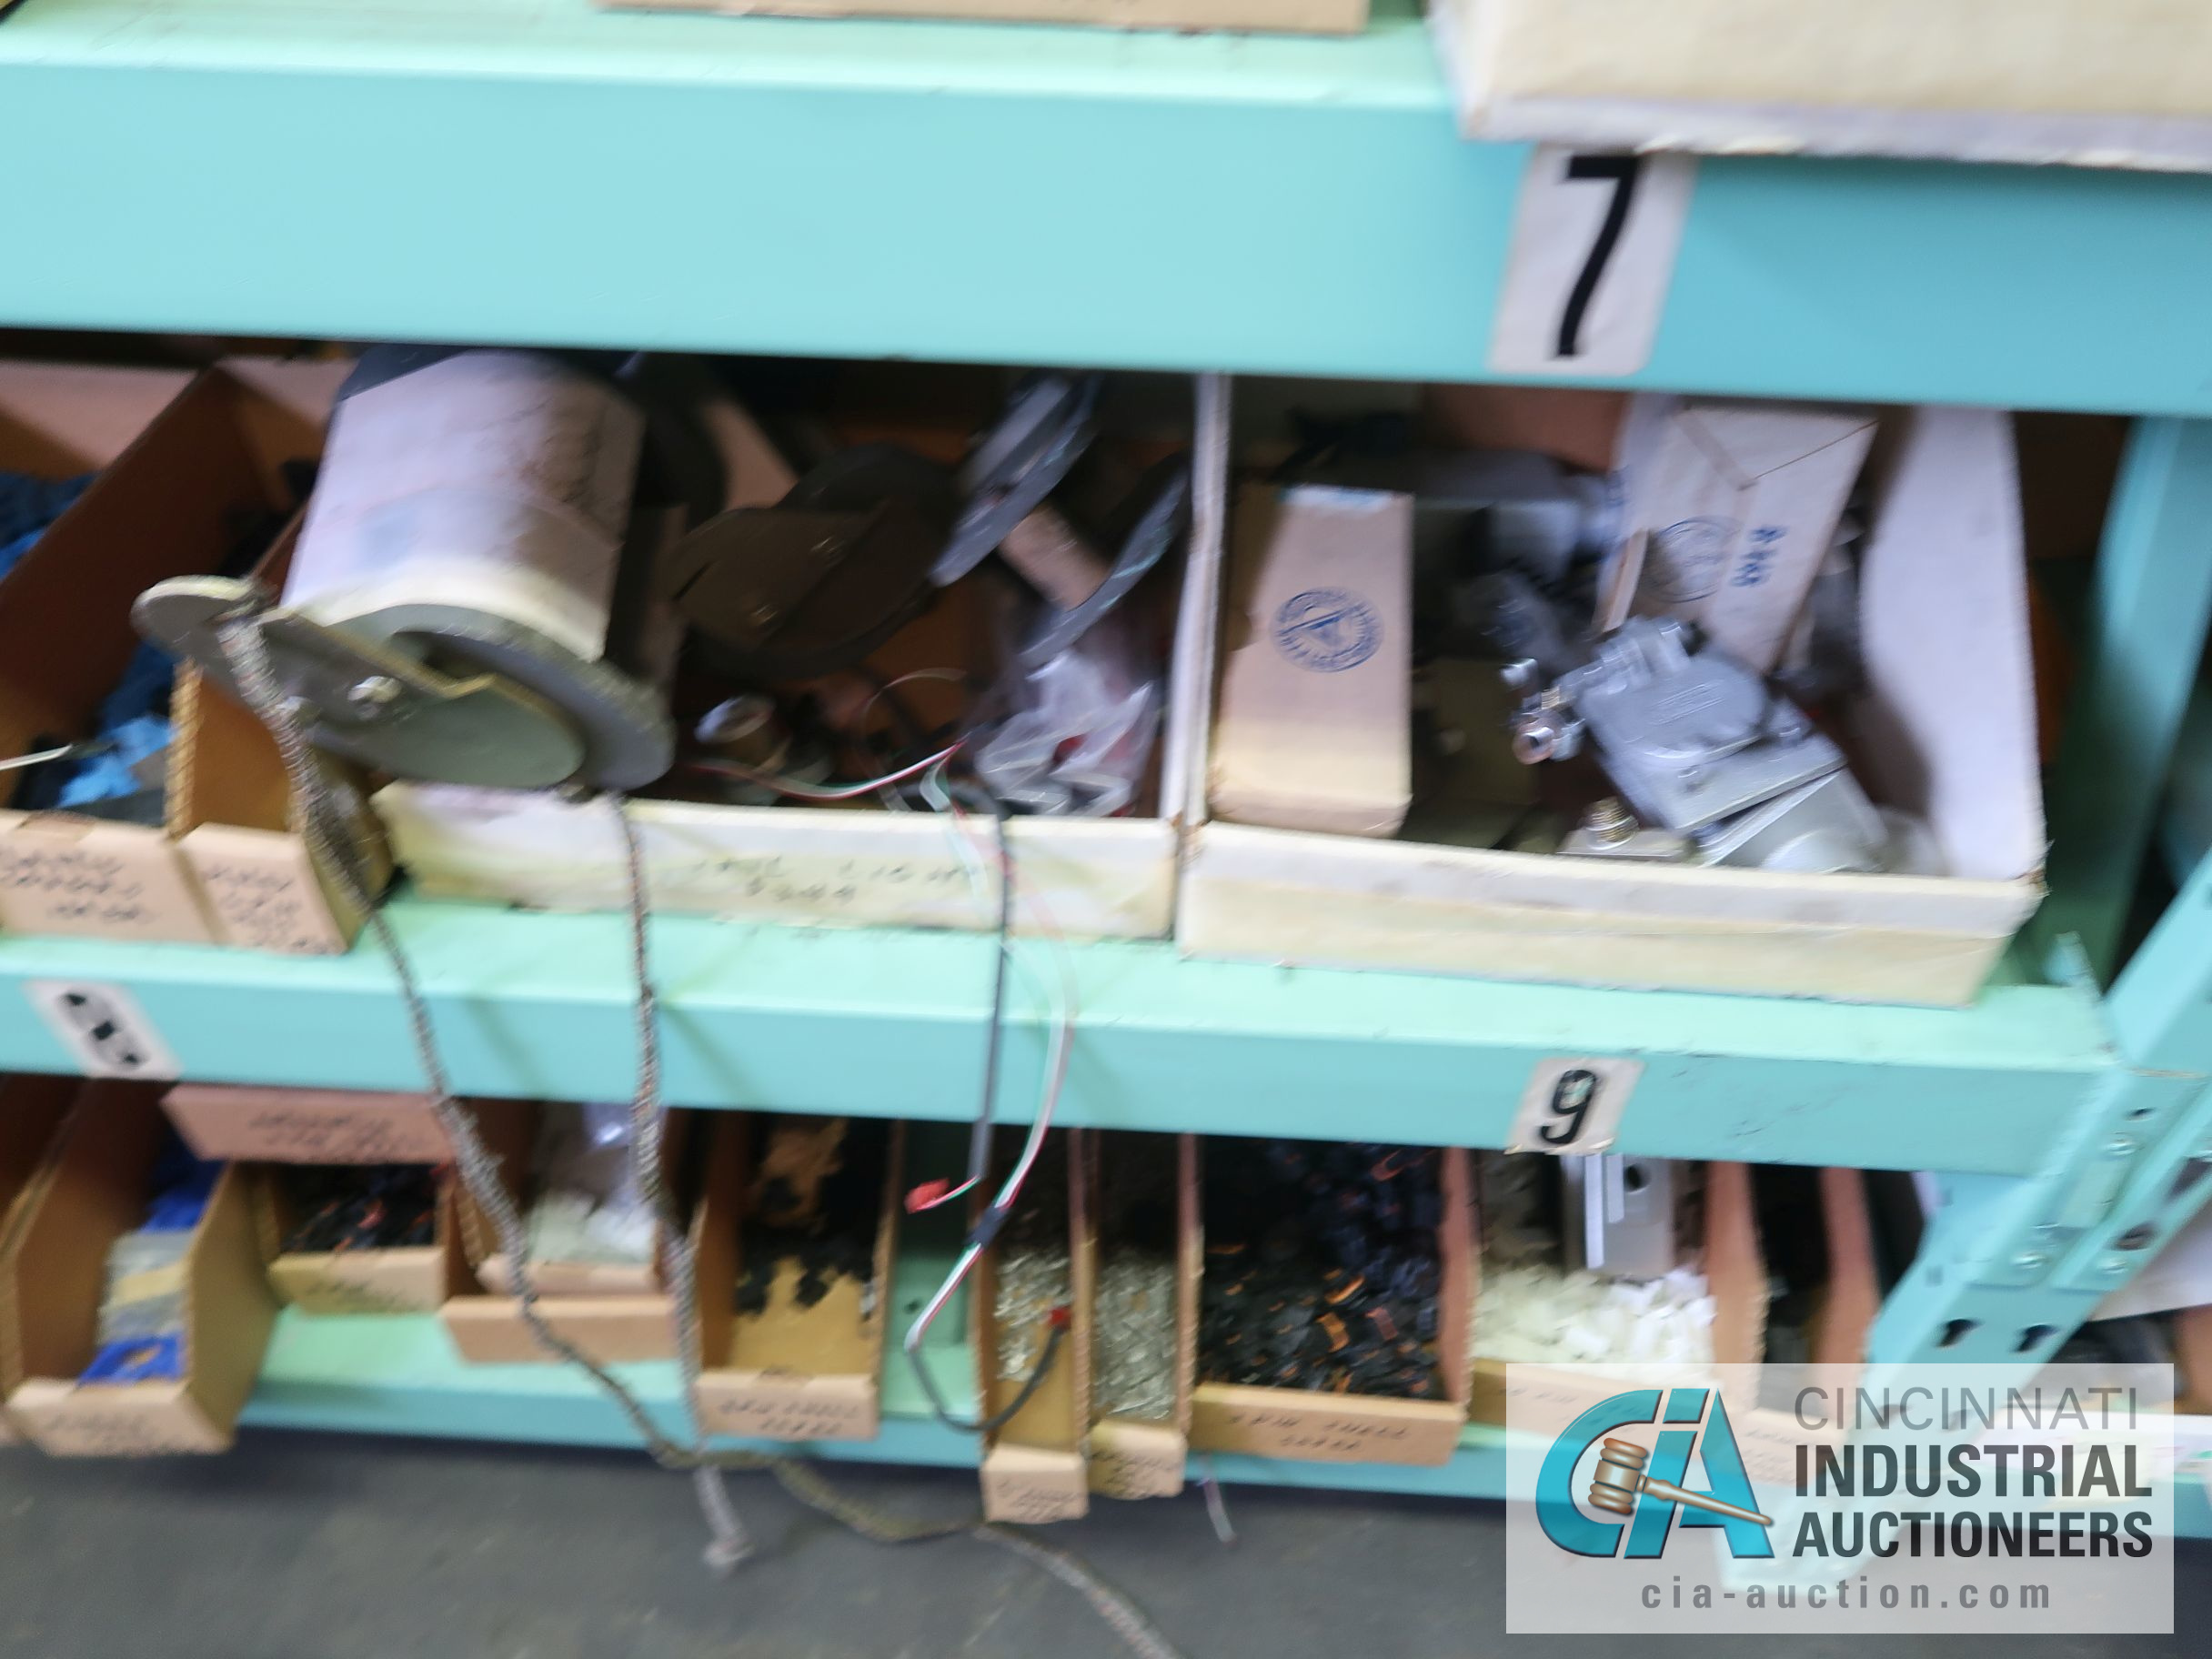 CONTENTS OF (5) RACKS INCLUDING MISCELLANEOUS AUTOMOTIVE PARTS, LIGHTS, FILTERS, ENGINE PARTS, RIMS, - Image 19 of 29